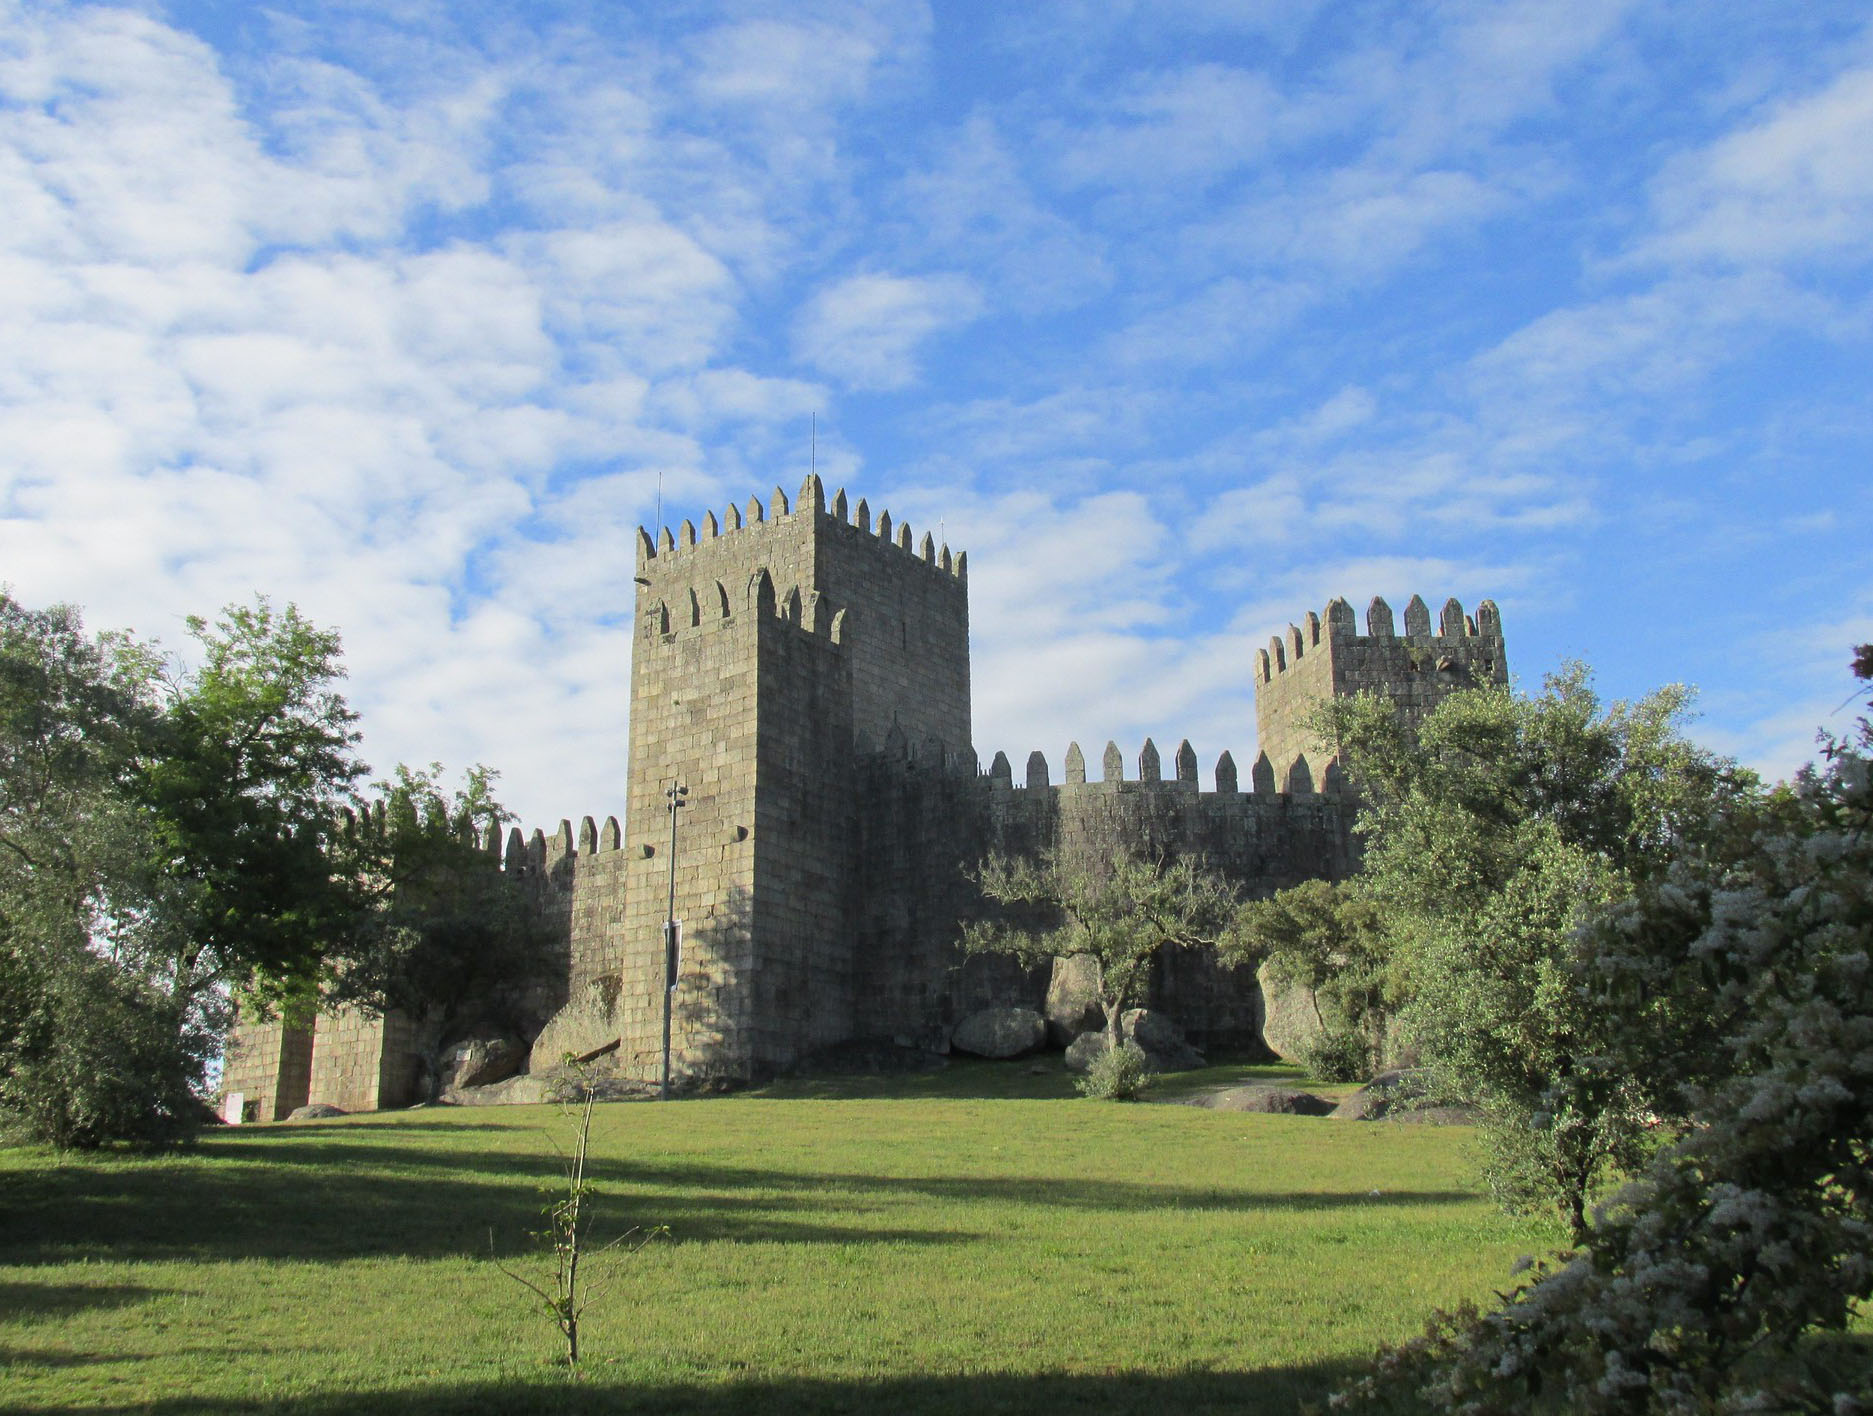 Camino de Santiago Tour (A Kinder Camino Portugues) - May 20, 2019